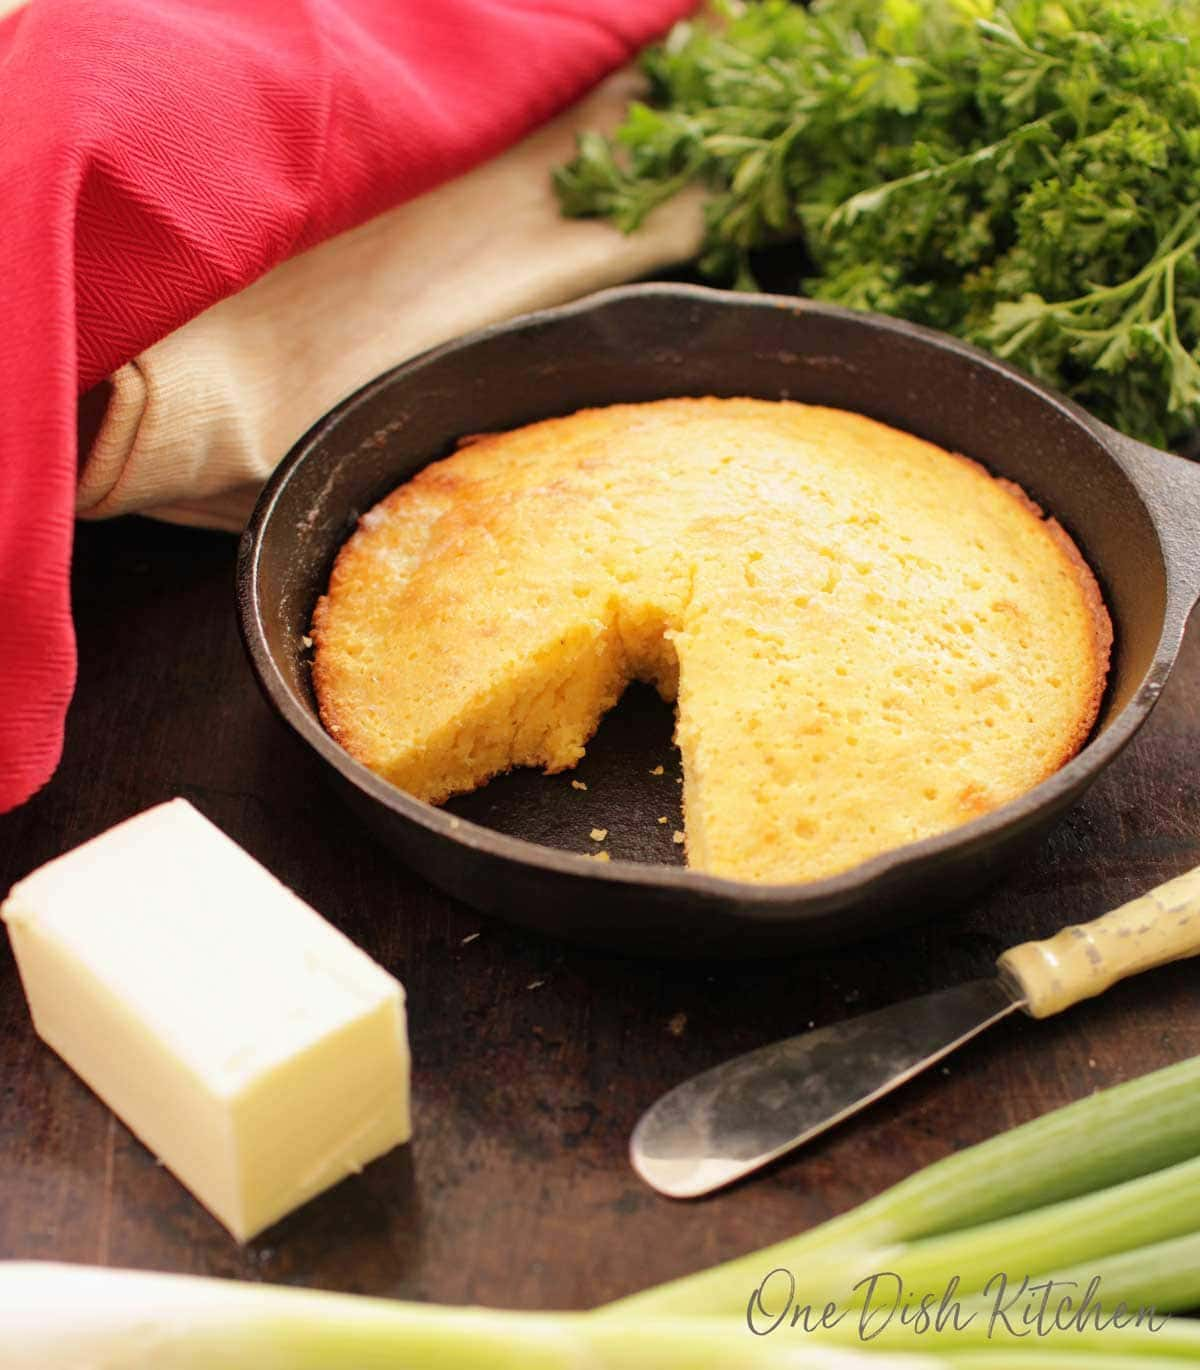 Cornbread in a small cast iron skillet next to a stick of butter and a butter knife